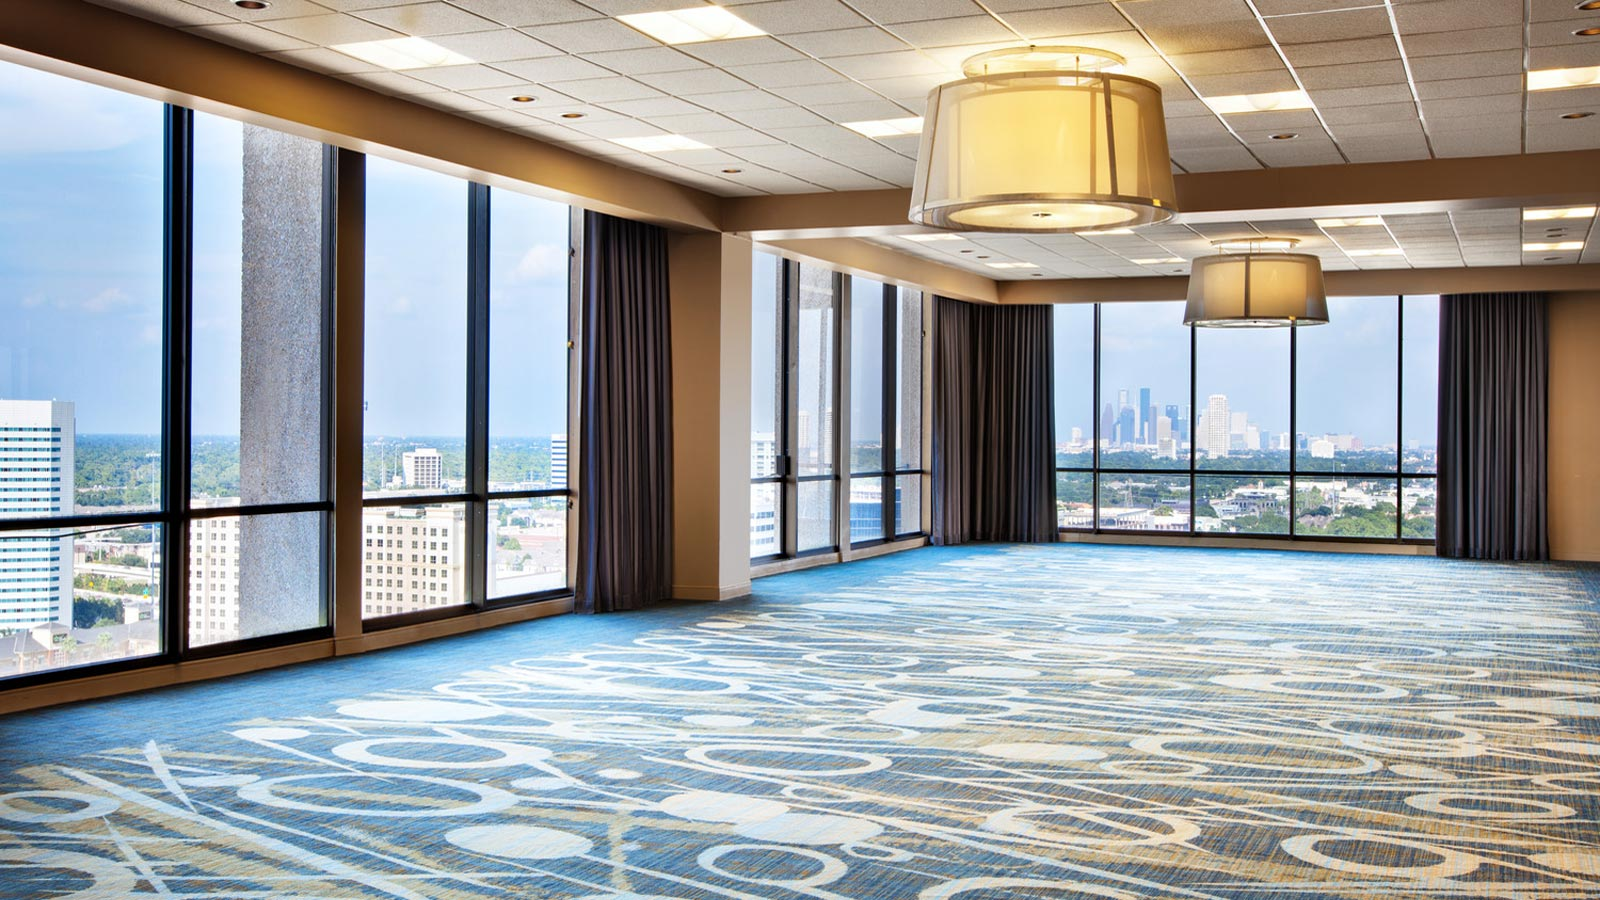 The Westin Oaks Houston at The Galleria - Houston Meeting Rooms - The Roof Venue